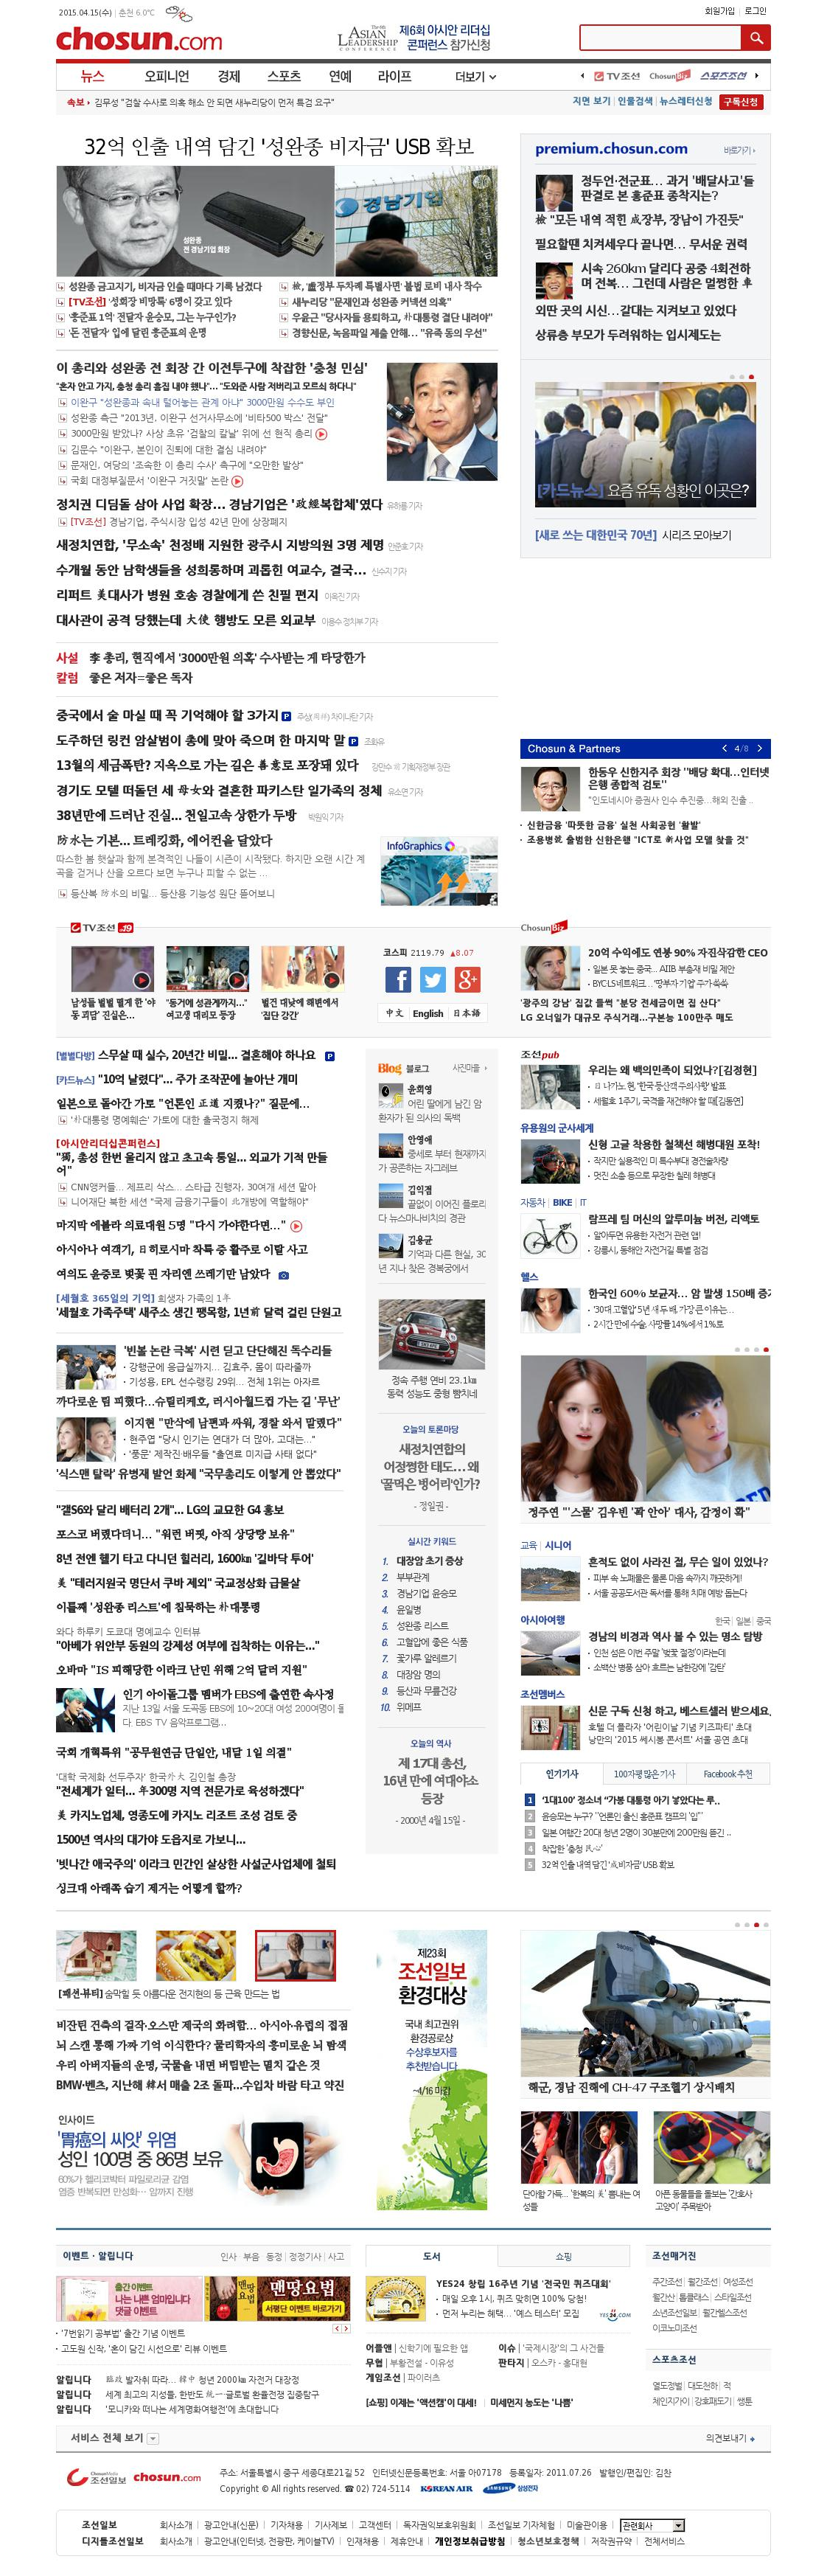 chosun.com at Wednesday April 15, 2015, 2:02 a.m. UTC